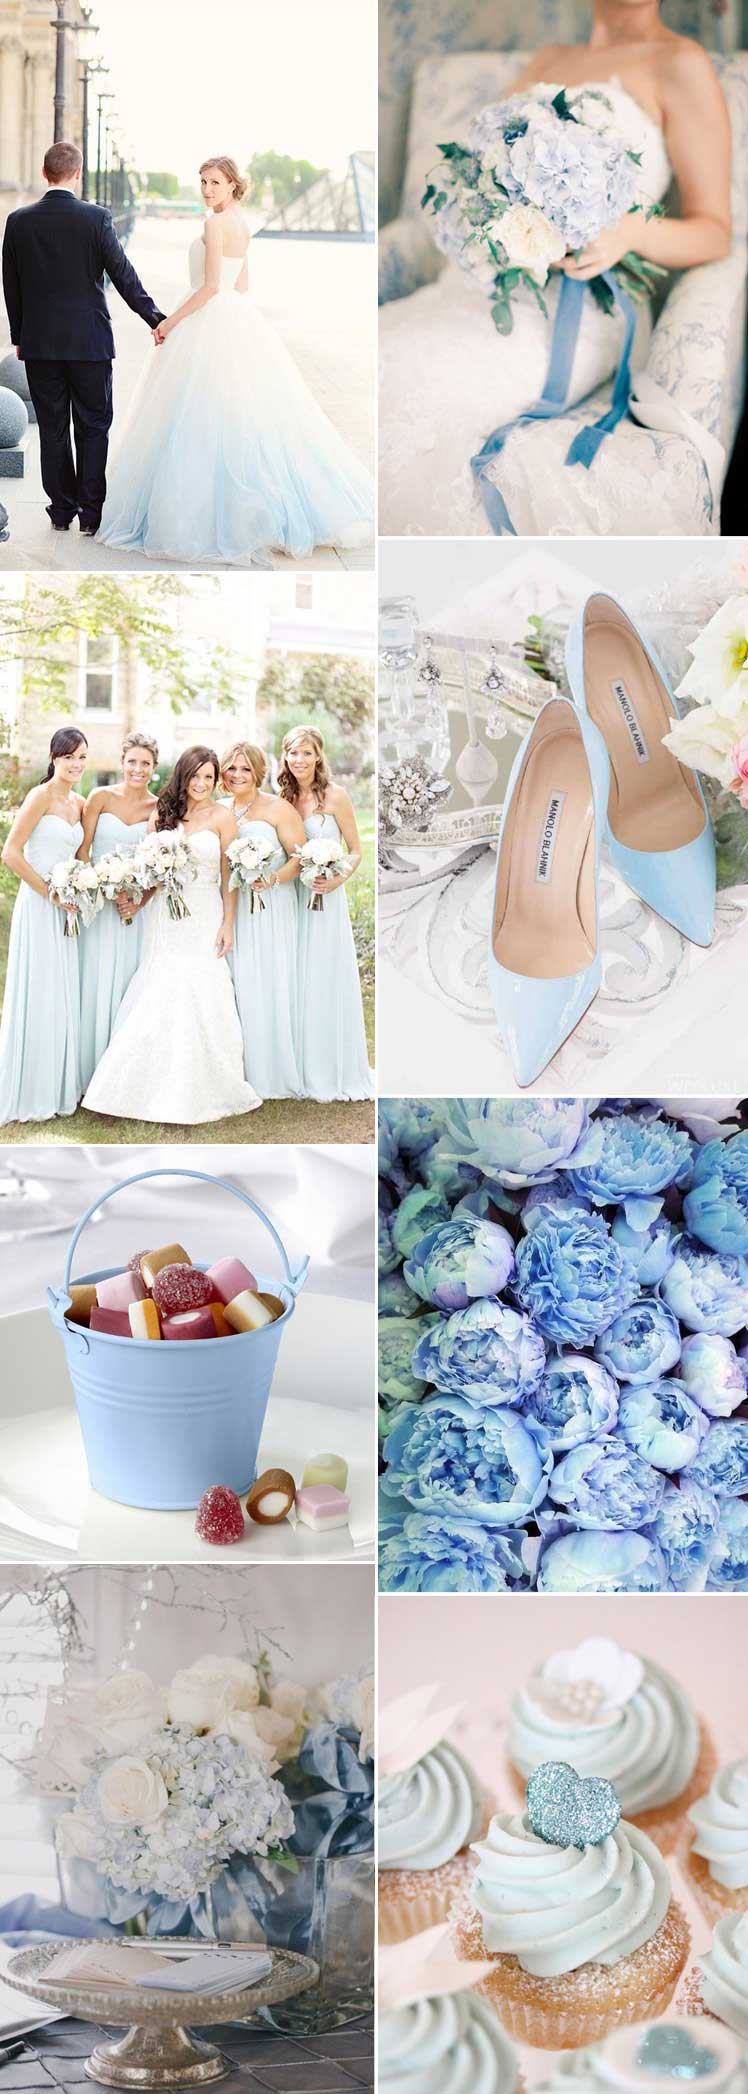 wedding ideas pinterest 2015 beautiful blue wedding ideas for your big day glitzy secrets 28288